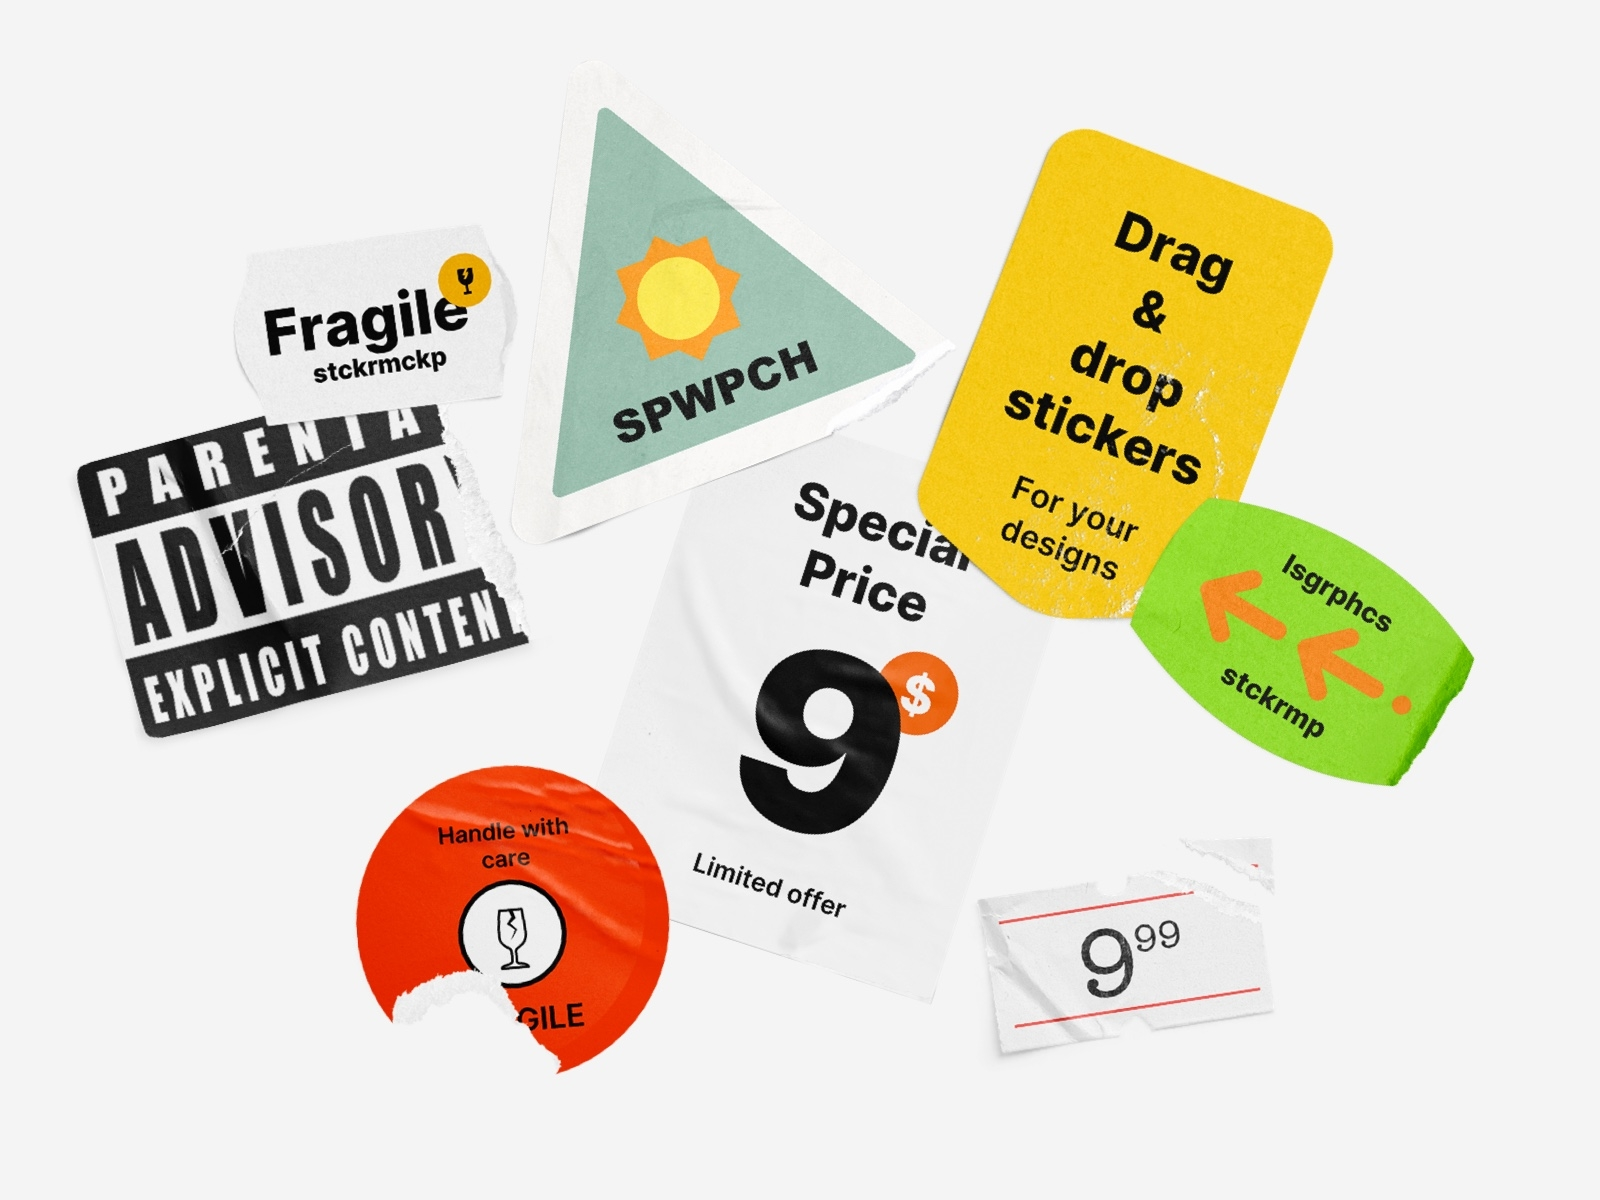 Check out this guide to create custom stickers, colorful decals and even custom vinyl decals for your car, home or business. Sticker Mockup Designs Themes Templates And Downloadable Graphic Elements On Dribbble